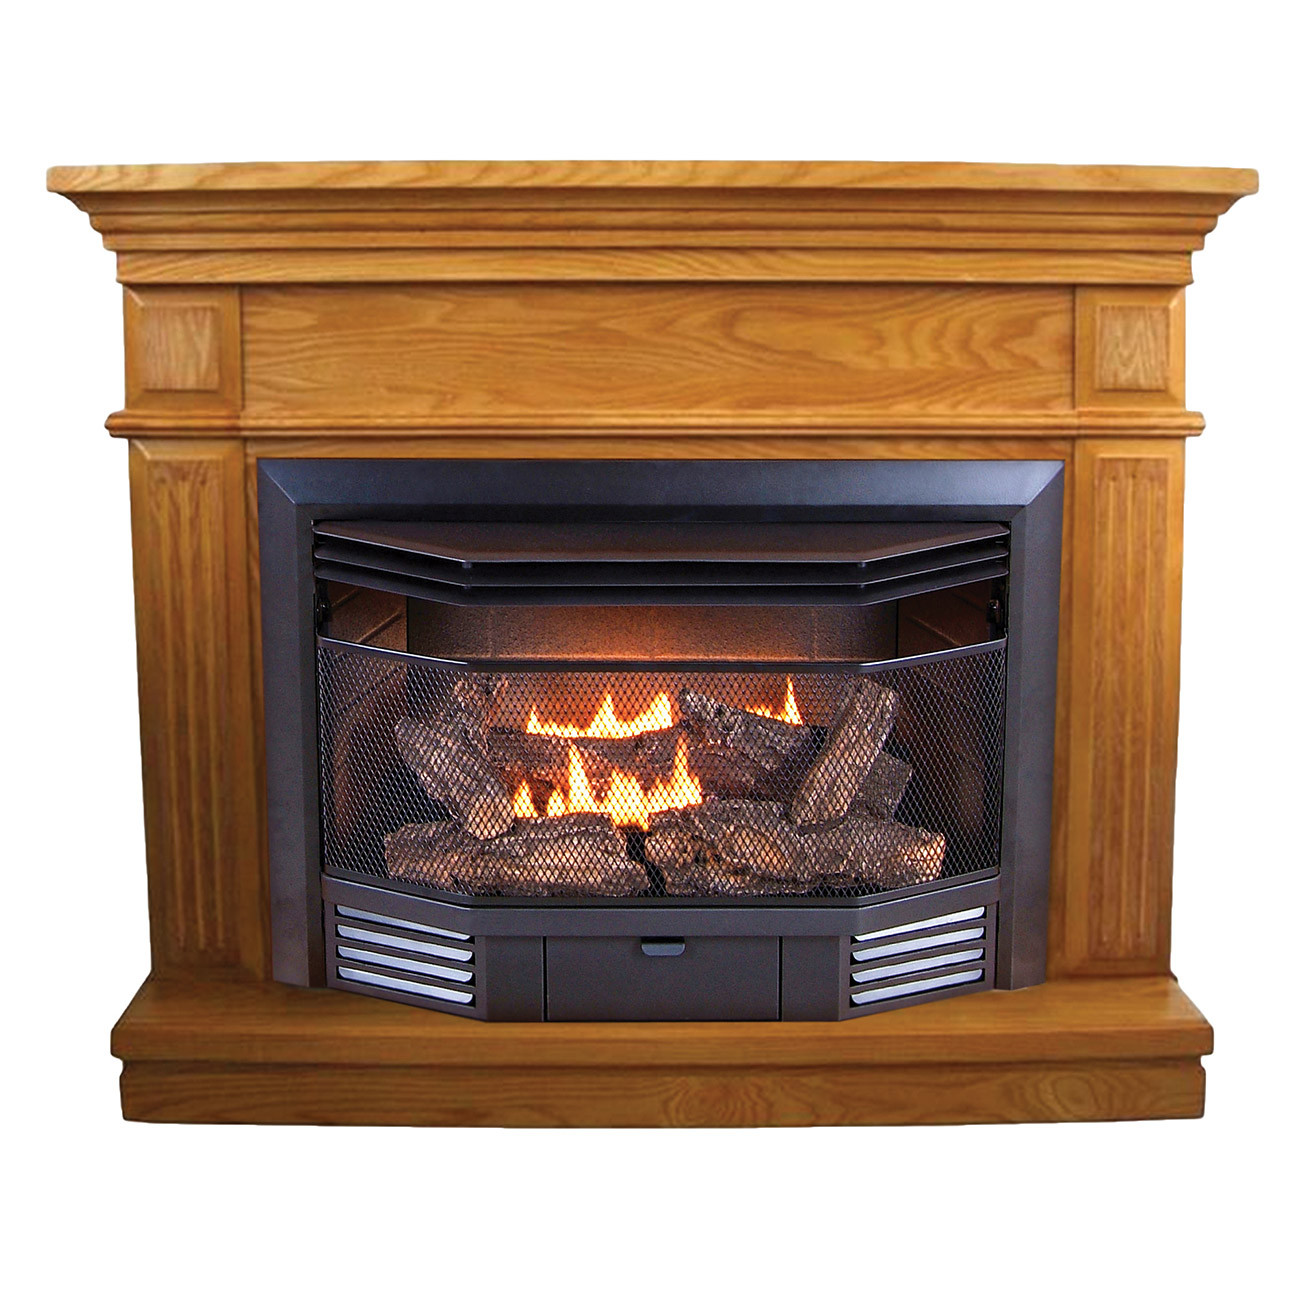 Best ideas about Propane Fireplace Heater . Save or Pin Ventless Fireplace For Model BD23TCC 2 LO Pro Heating Now.